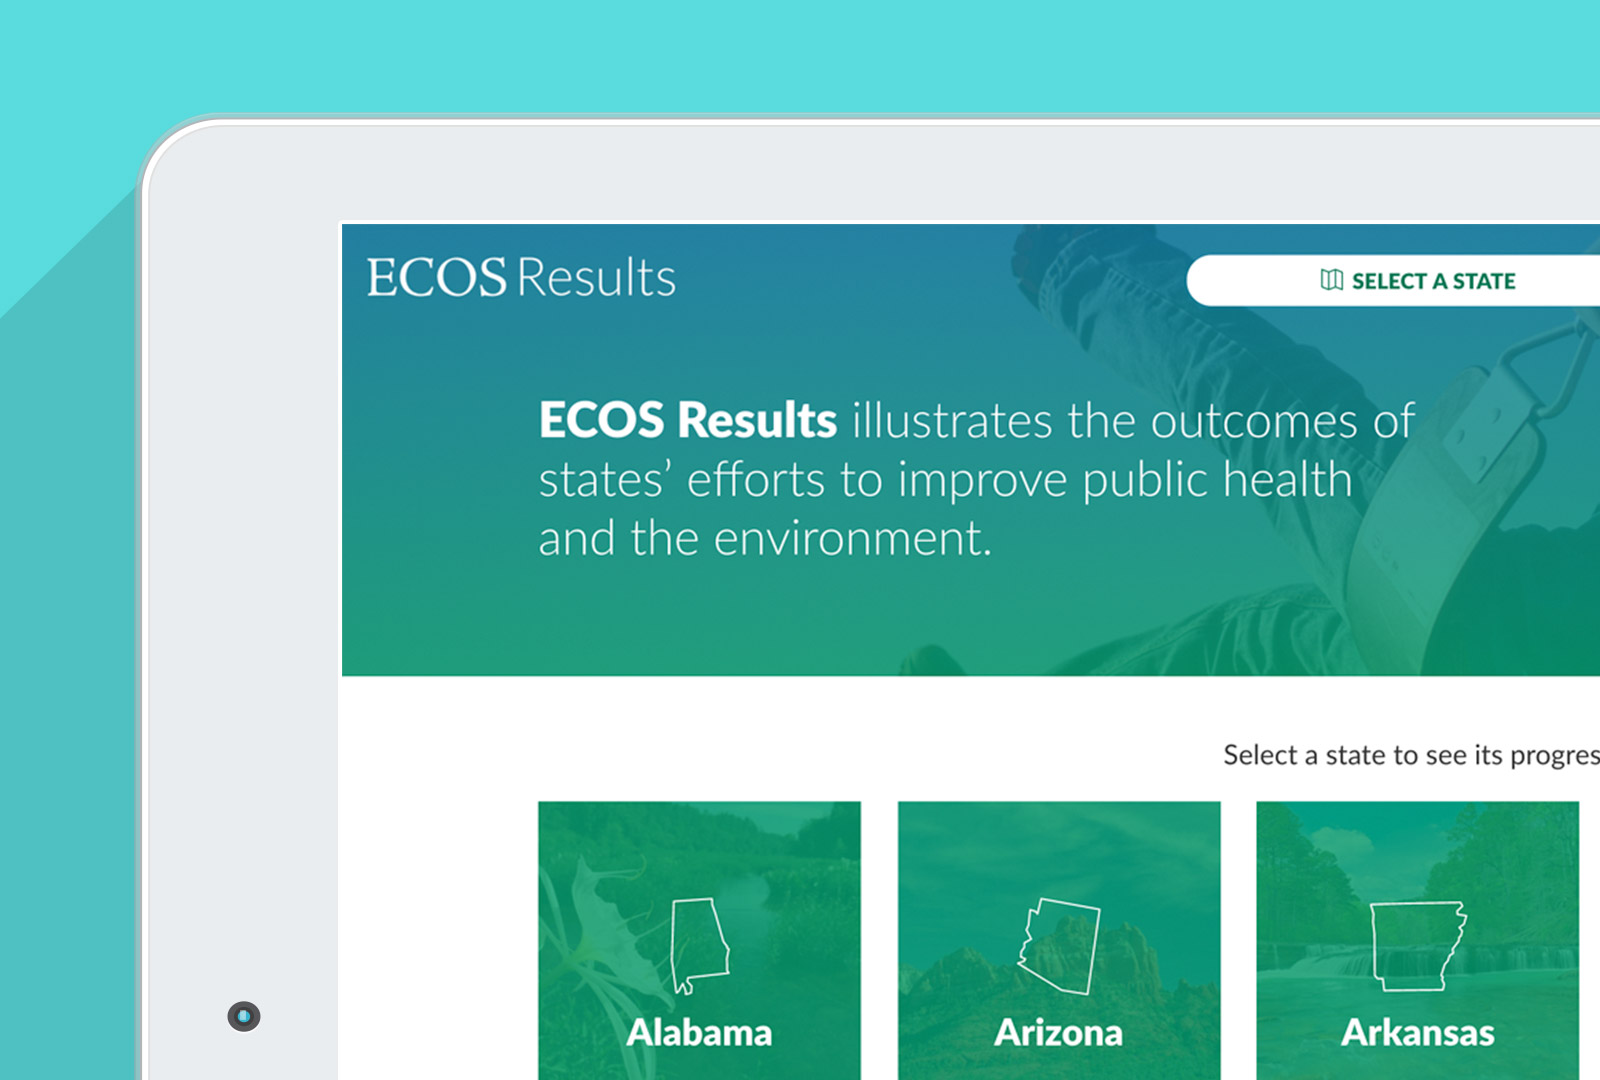 ecosresults.org homepage in an iPad